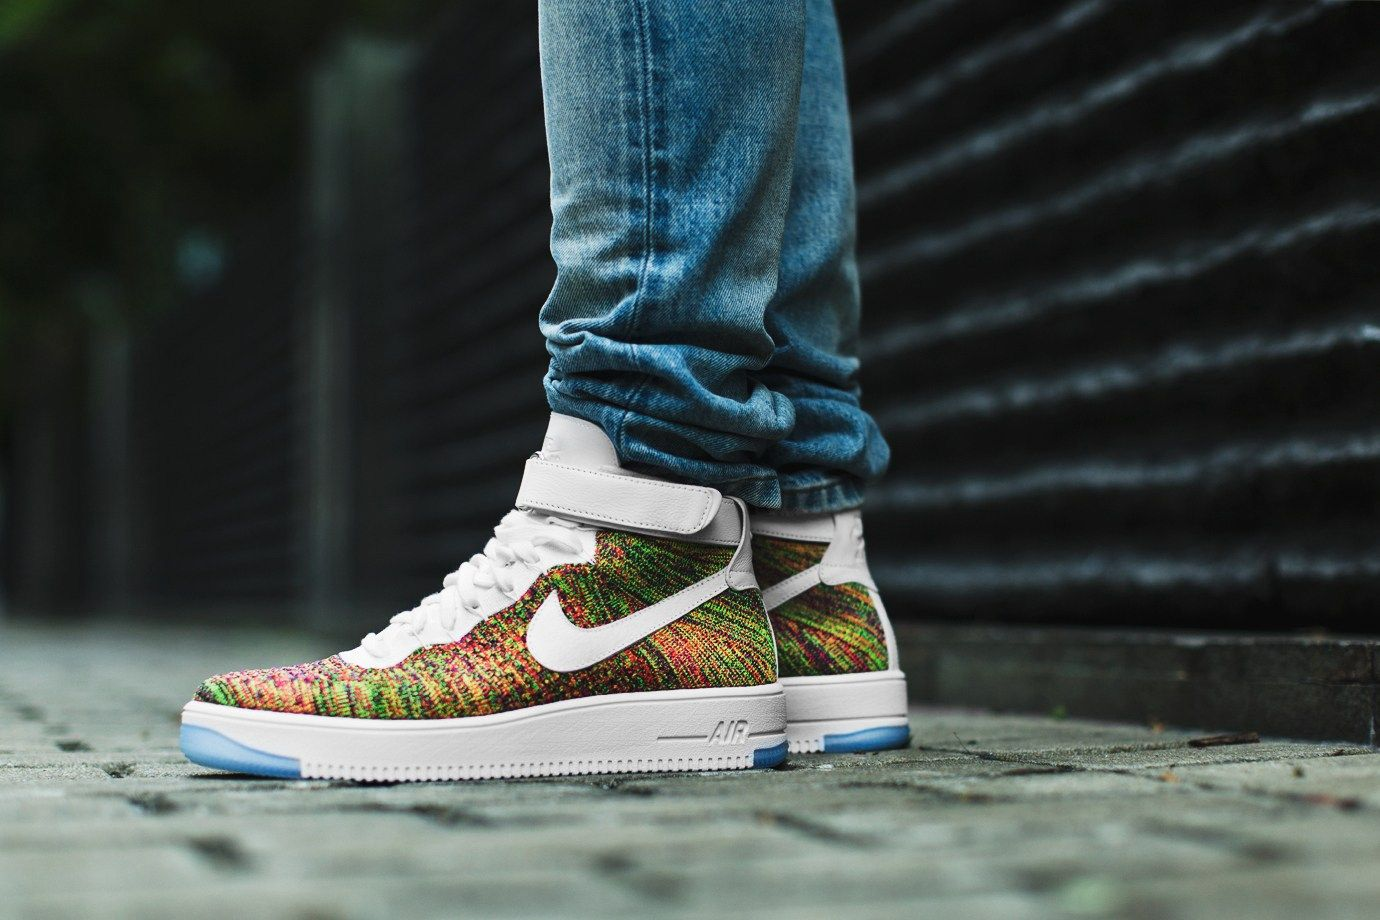 8e8e5d78f7650 A Closer Look at the Nike Air Force 1 Ultra Flyknit